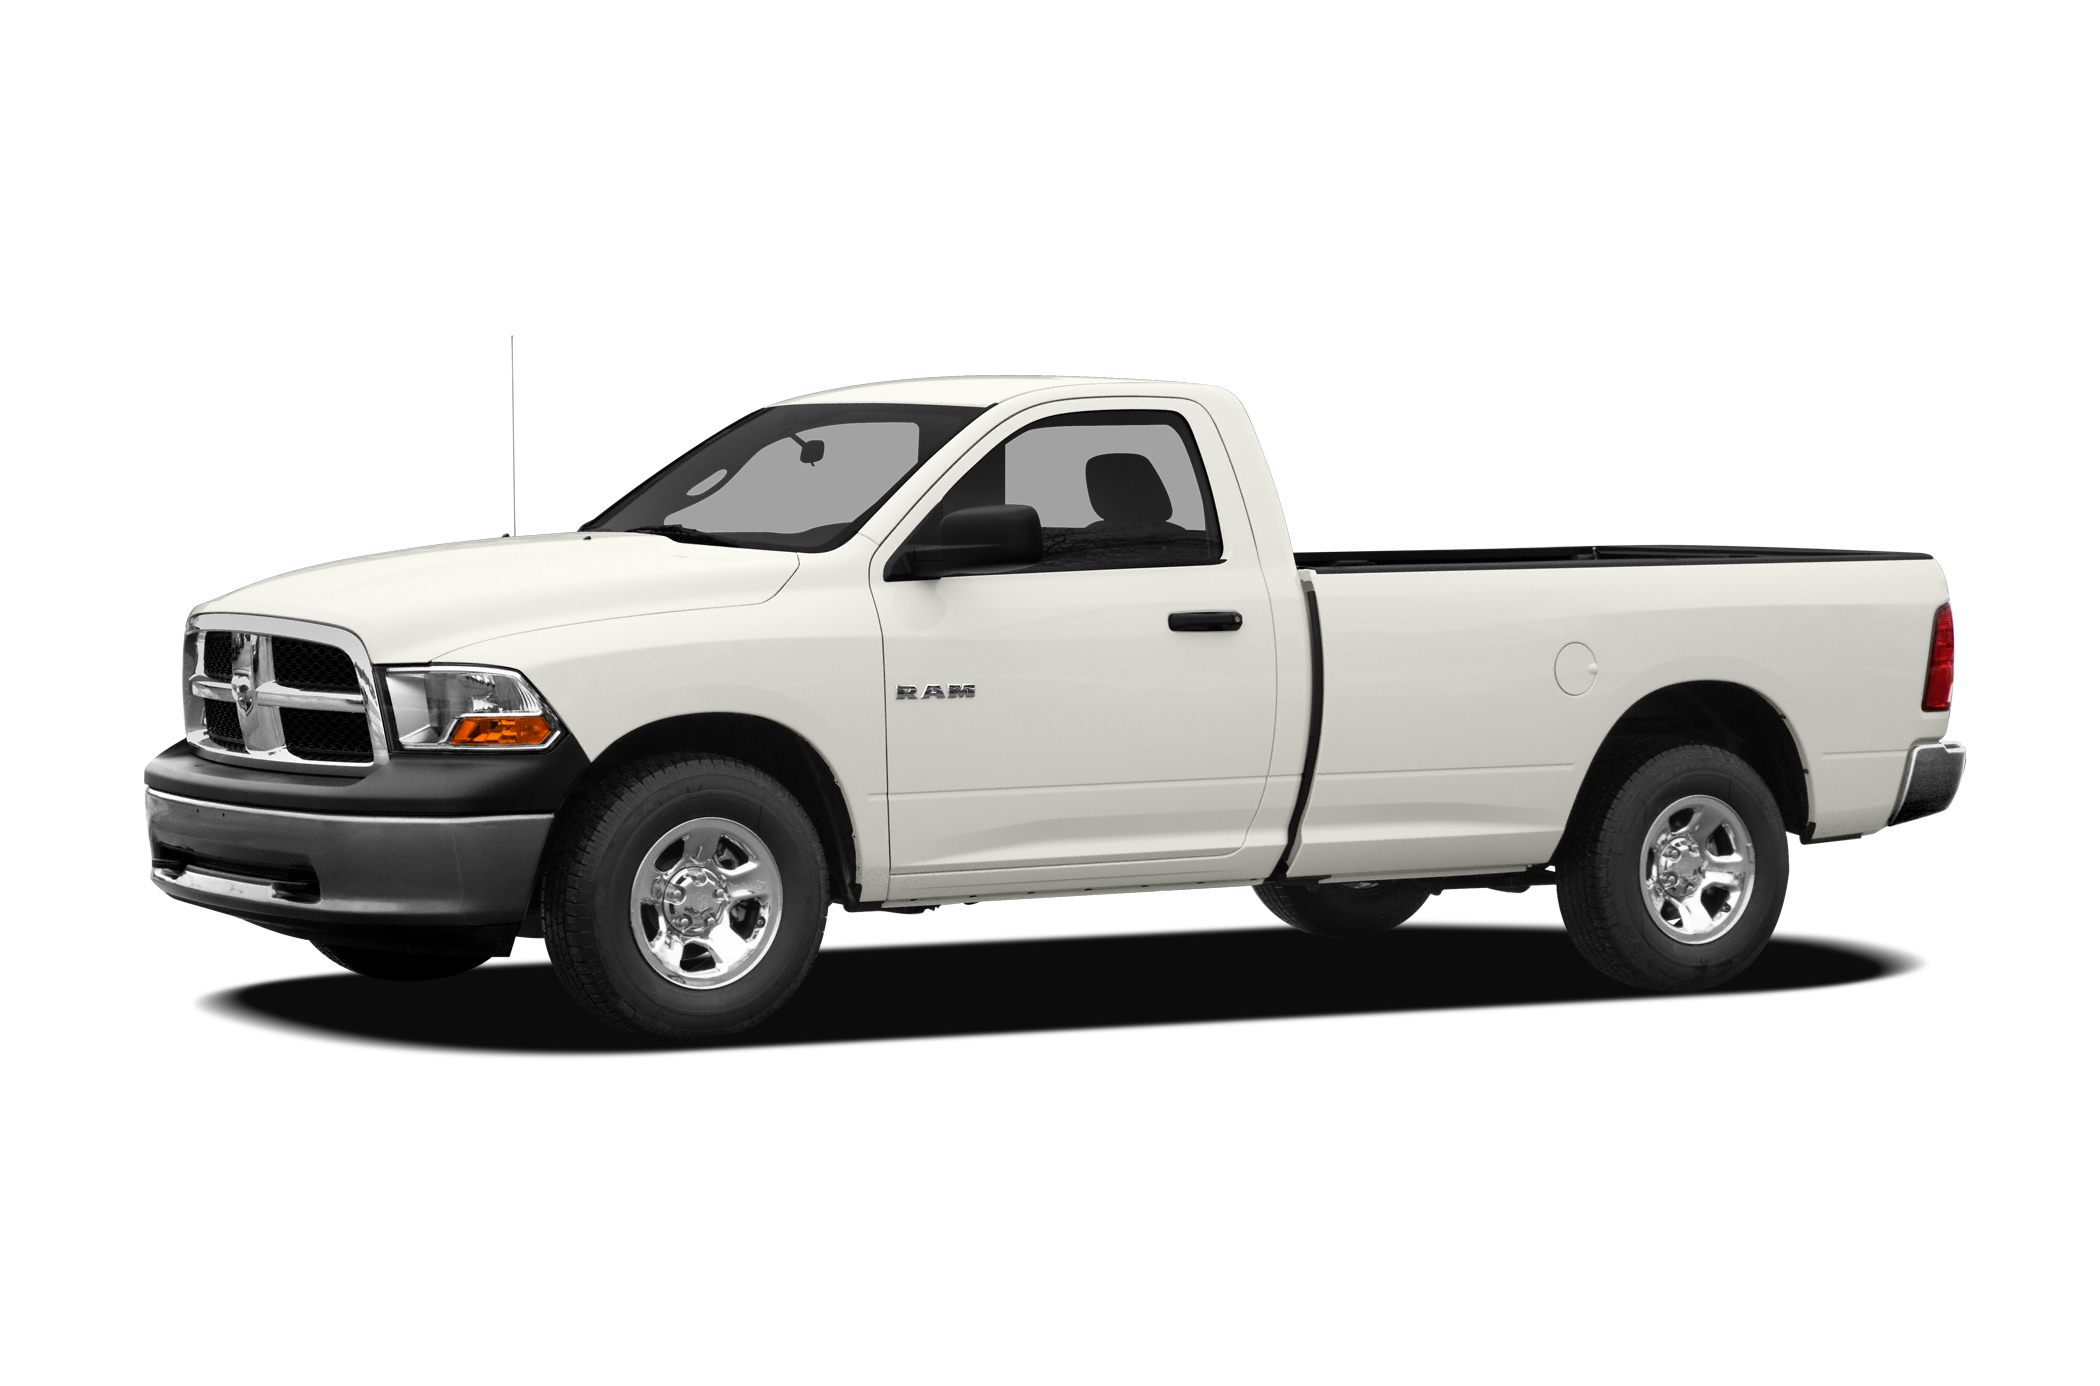 2011 Dodge Ram 1500 ST Miles 45366Color Bright White Stock FH2302B VIN 3D7JB1EK7BG537614